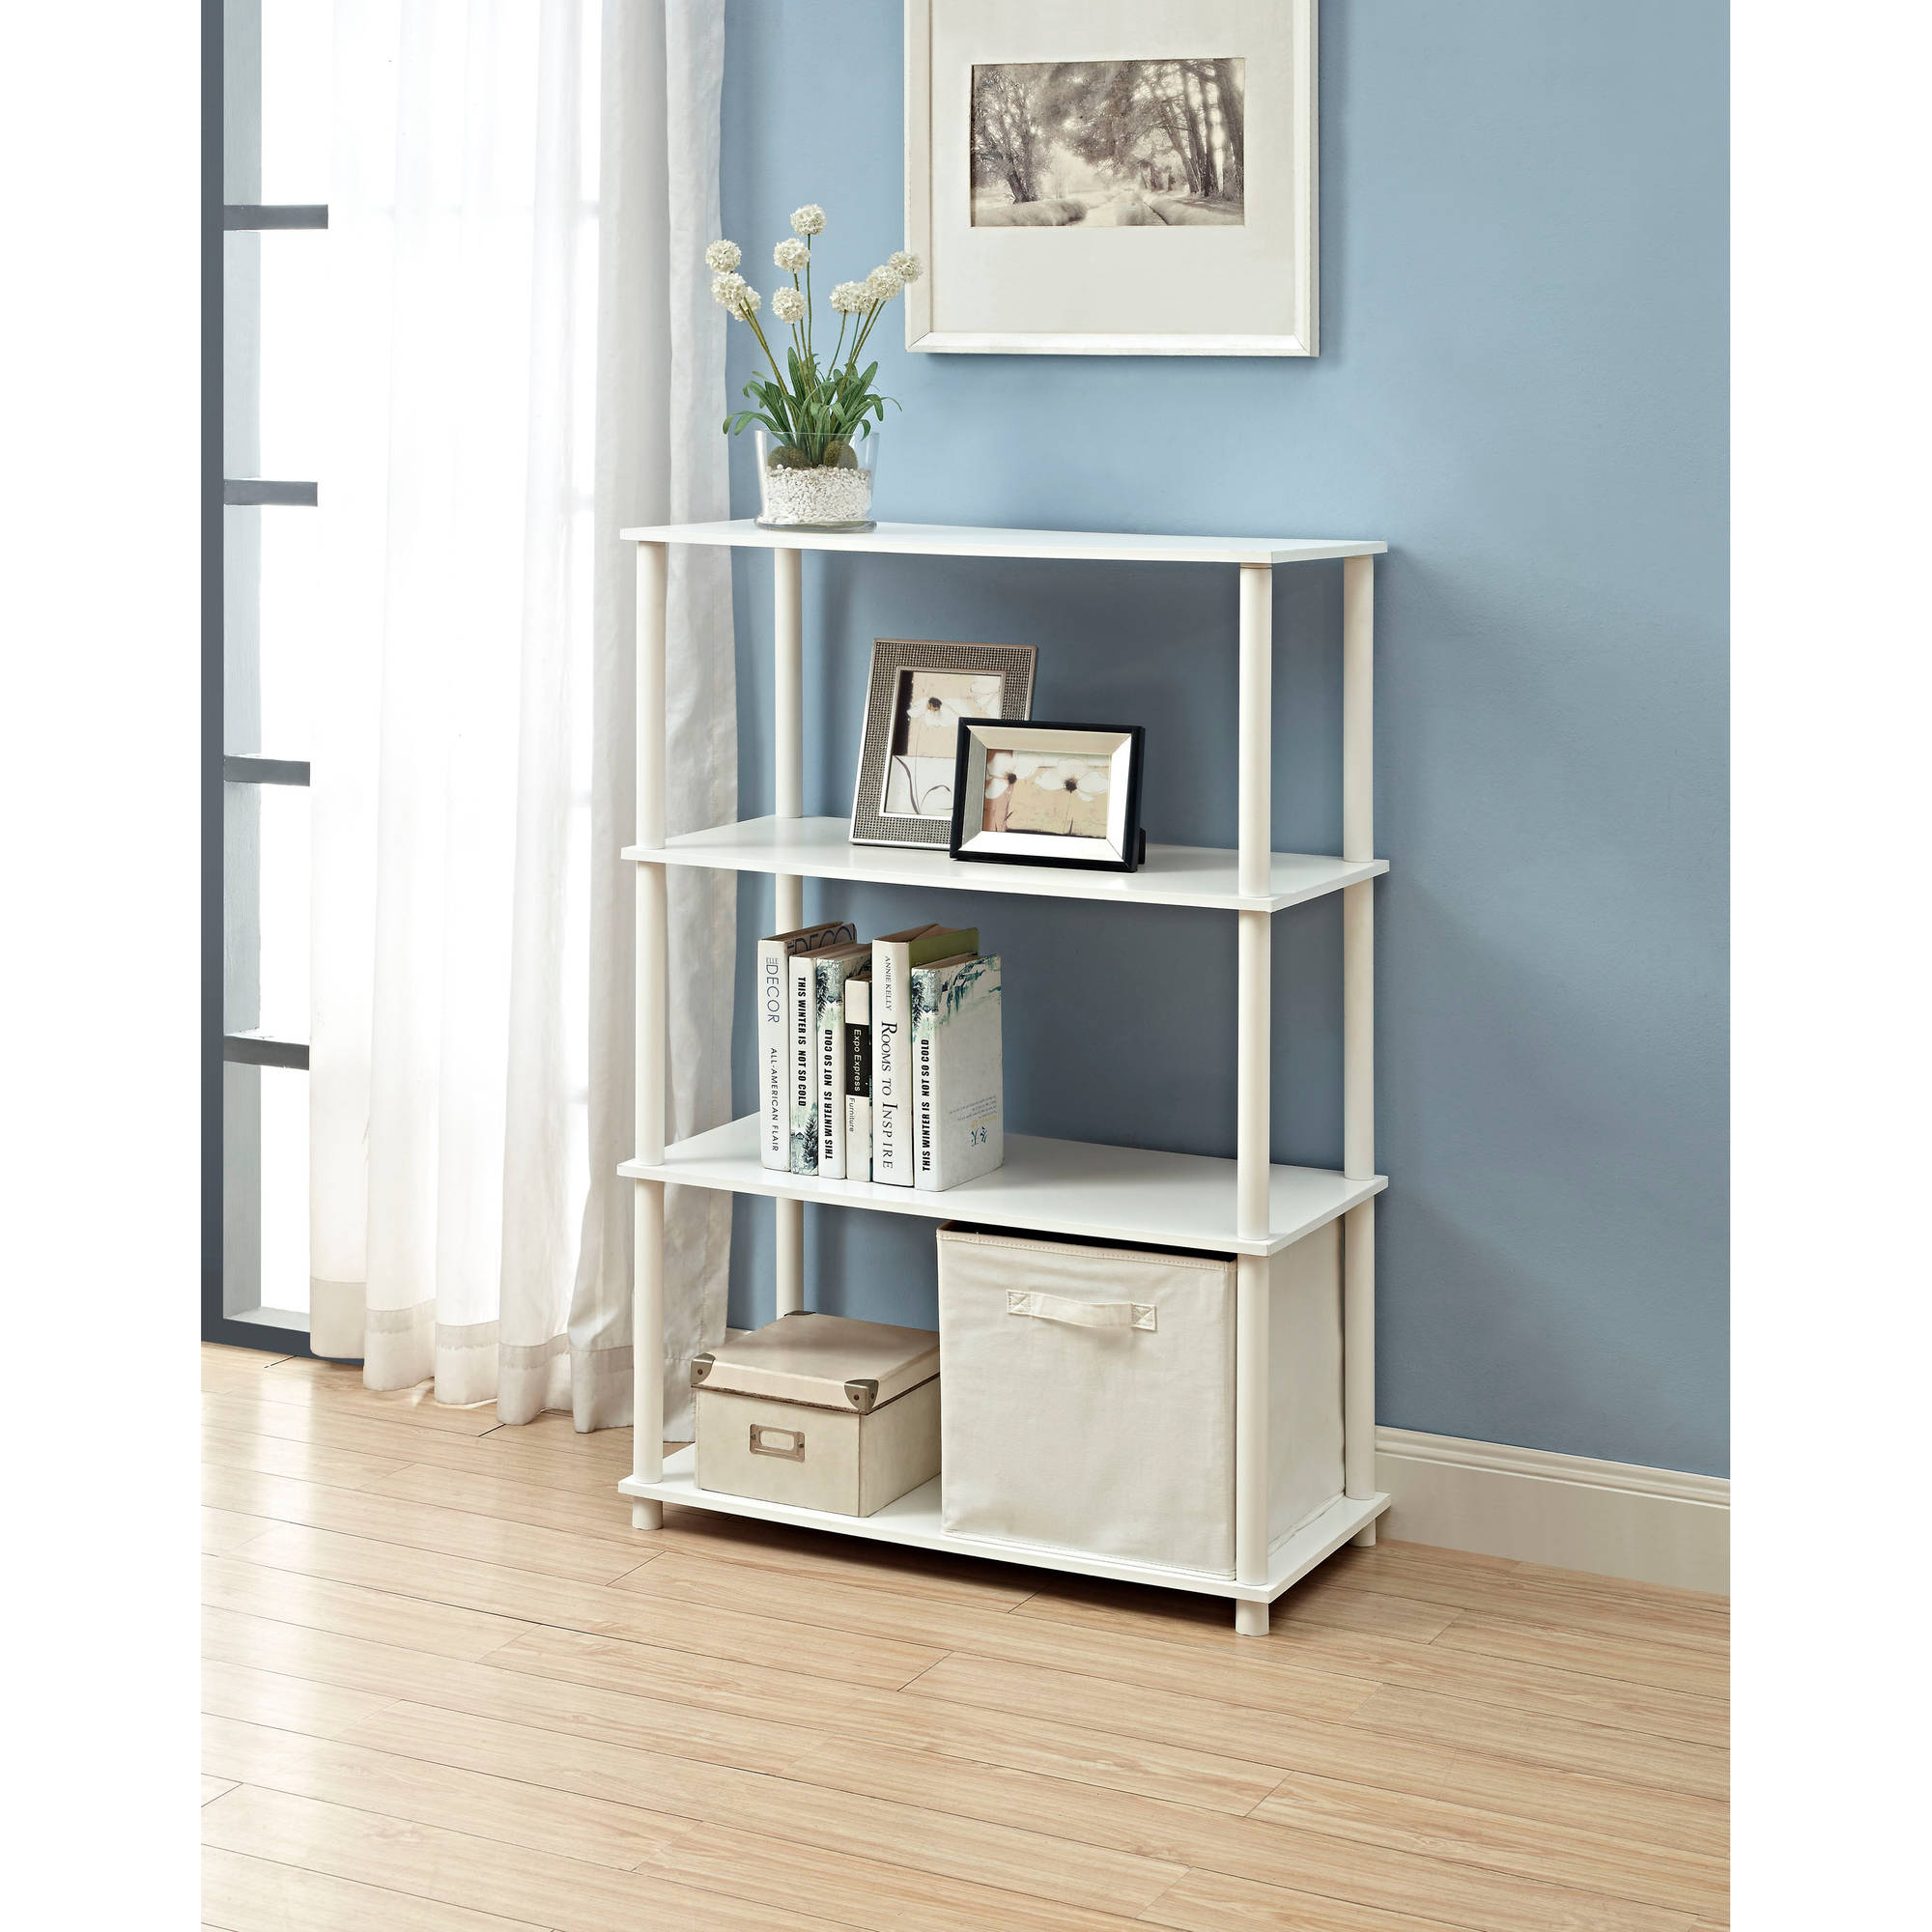 Better Homes and Gardens Cube Storage Shelf X Multiple Colors - Walmart.com  sc 1 st  Walmart & Better Homes and Gardens Cube Storage Shelf X Multiple Colors ...